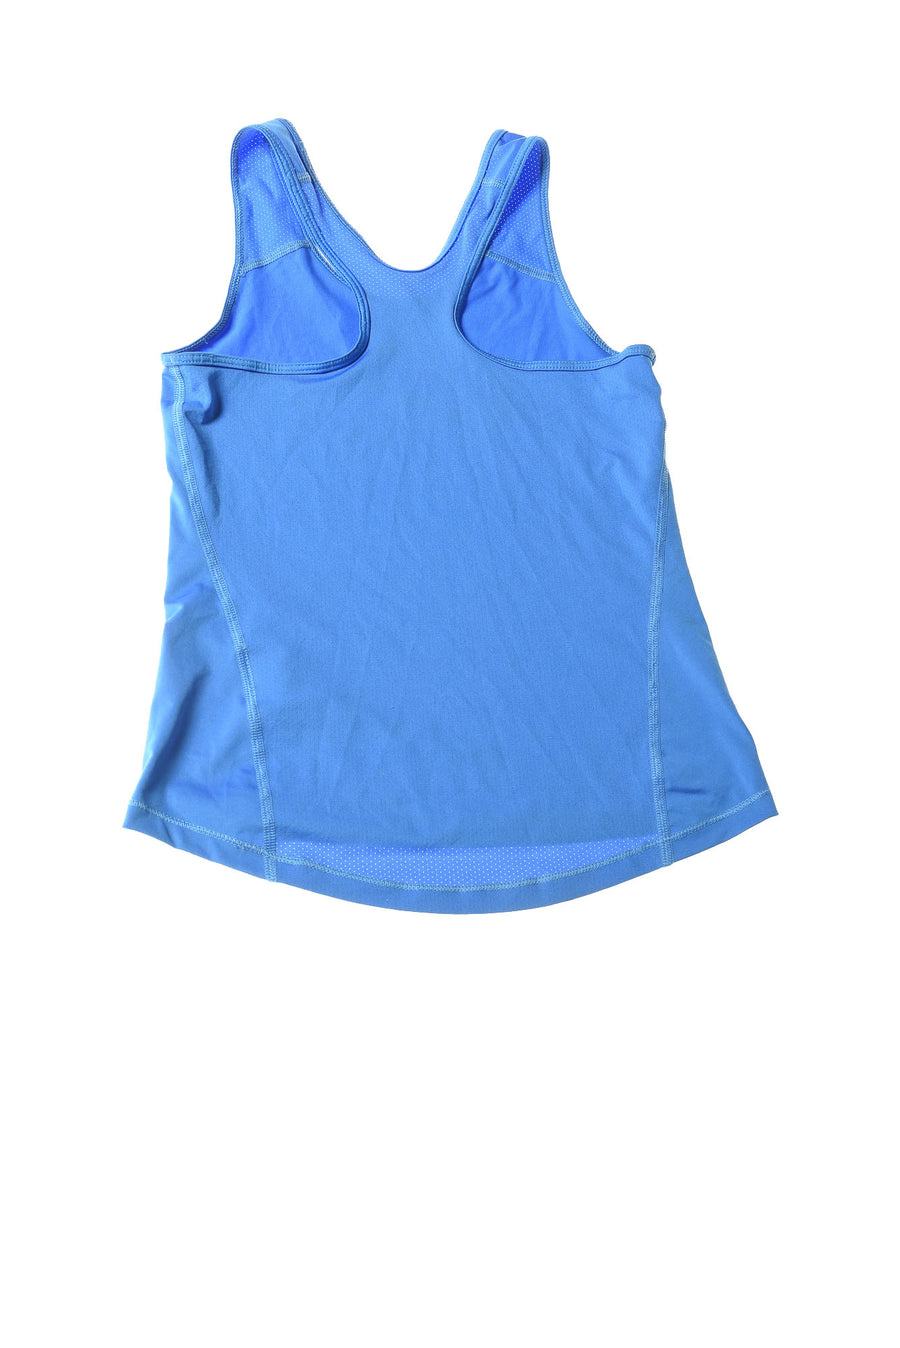 USED Nike Girl's Top Medium Blue